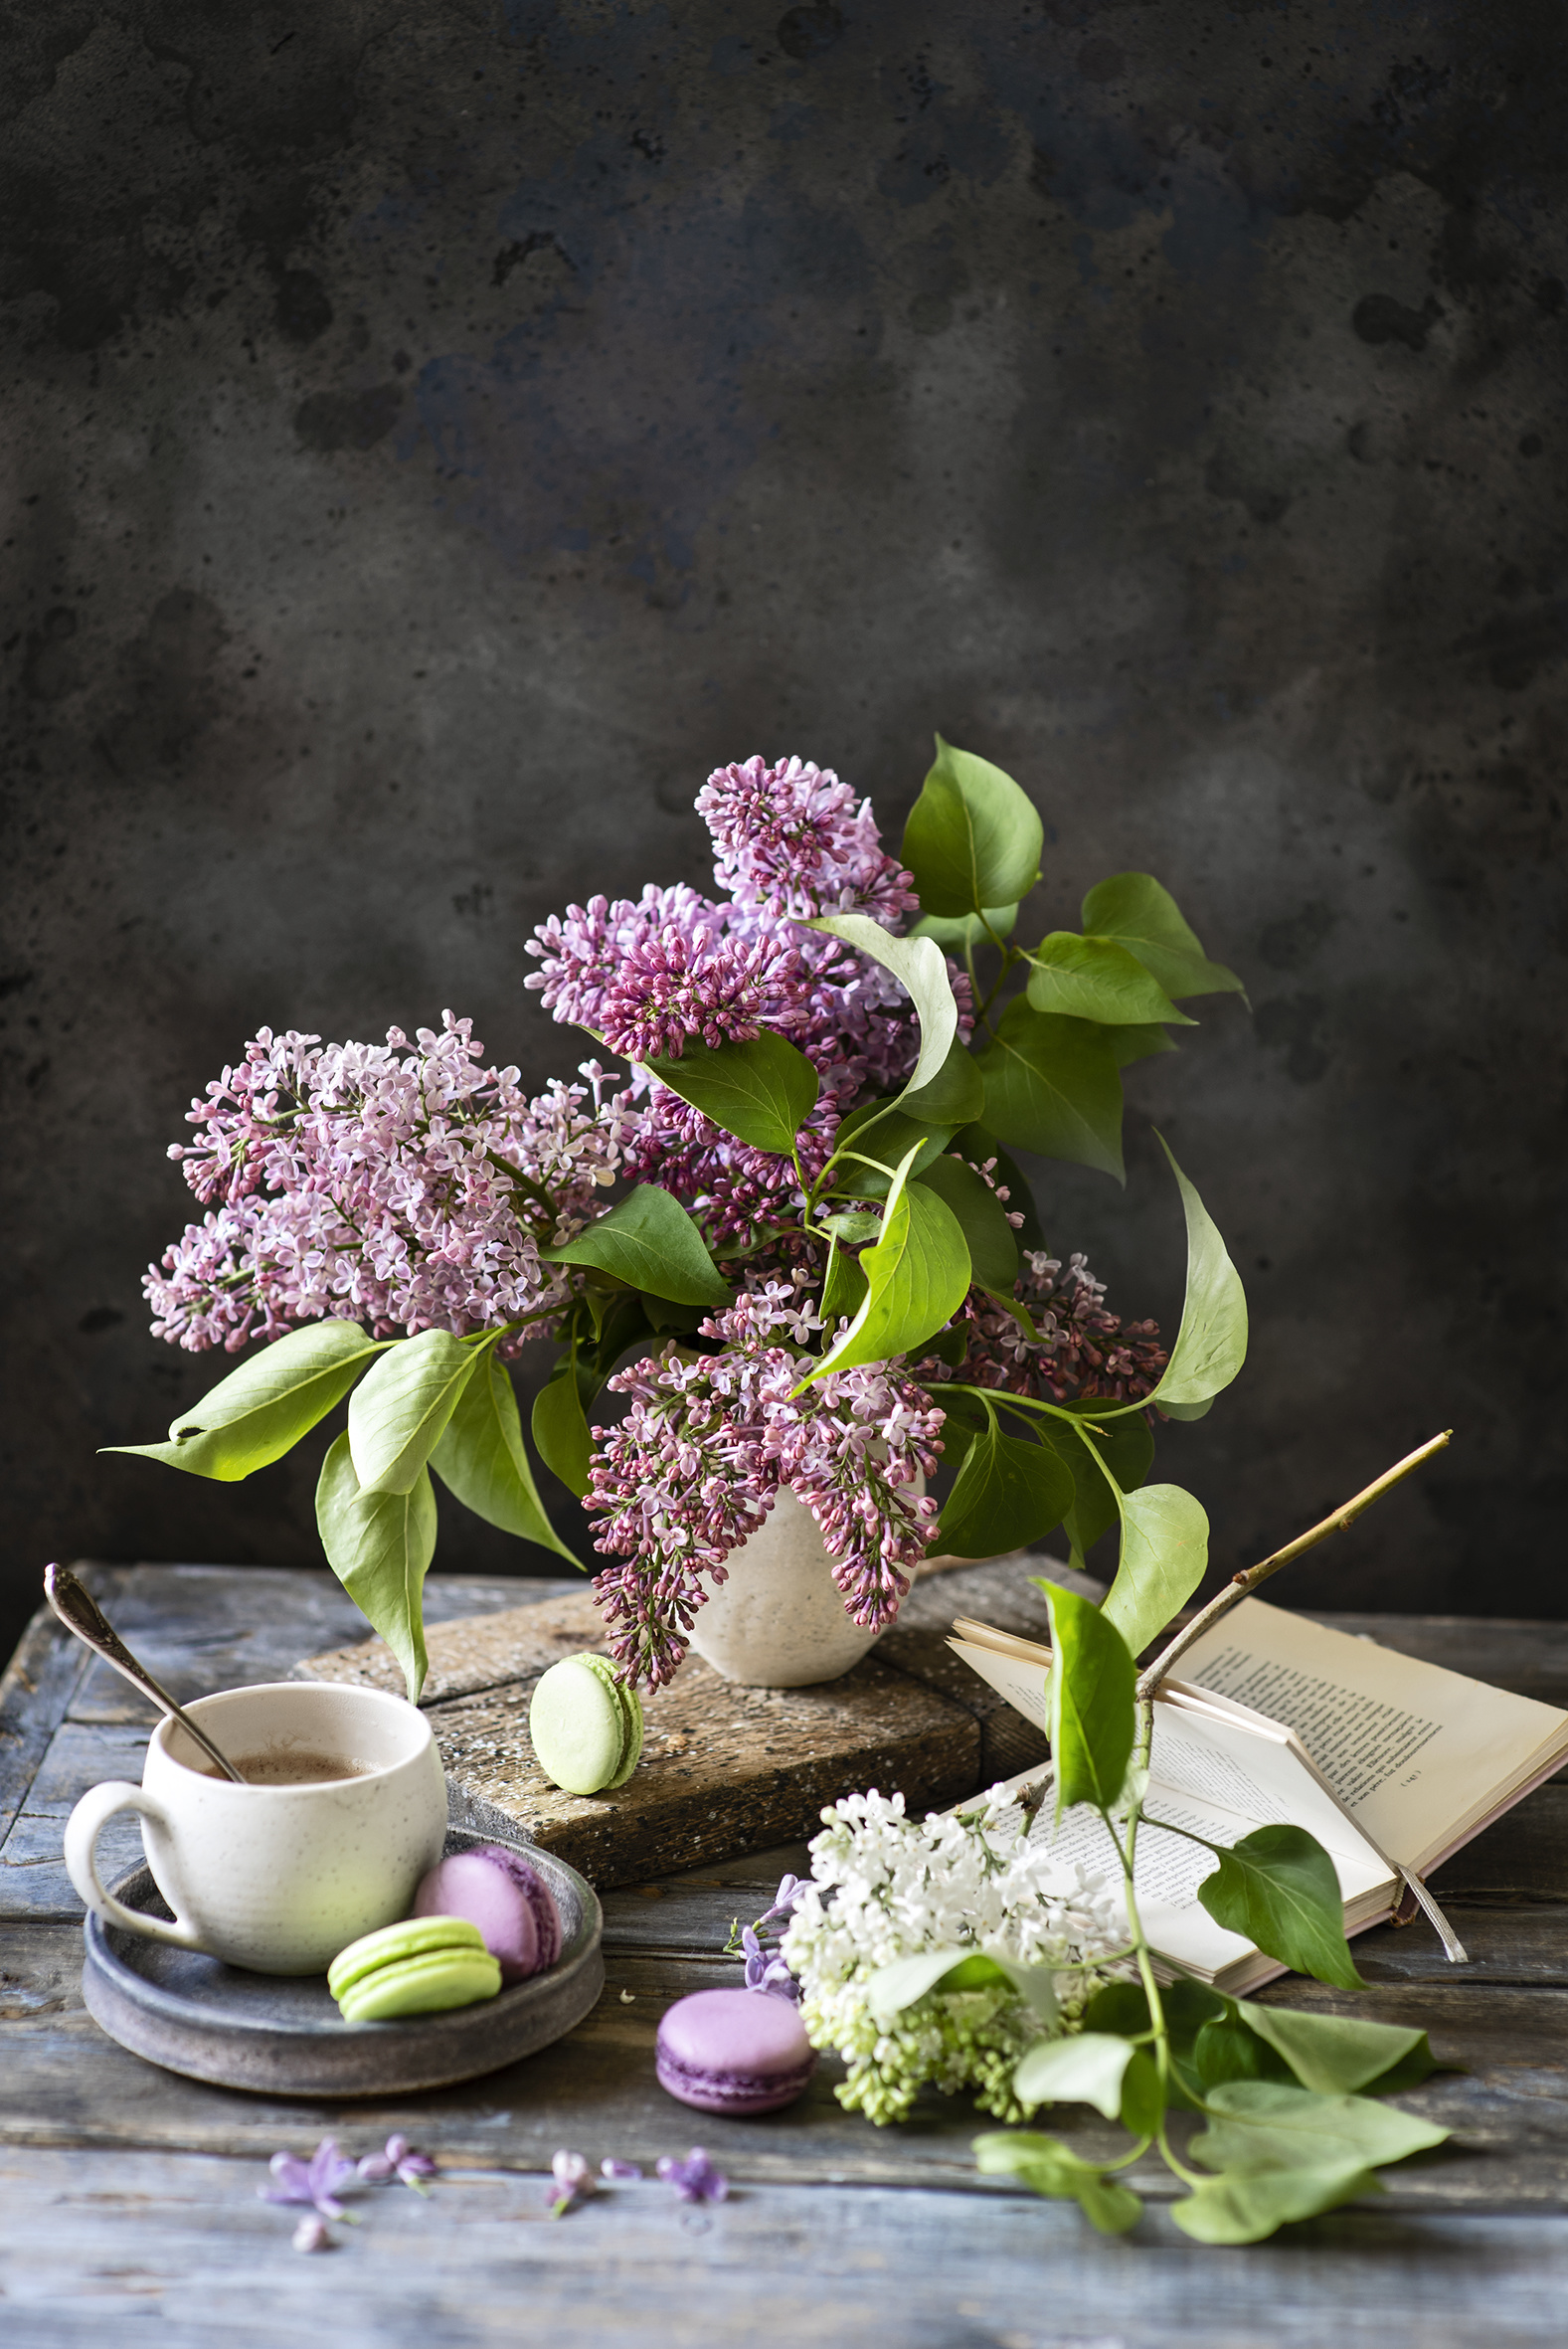 Photo french macarons Coffee Lilac Flowers Cup Food Branches Still-life  for Mobile phone Macaron flower Syringa